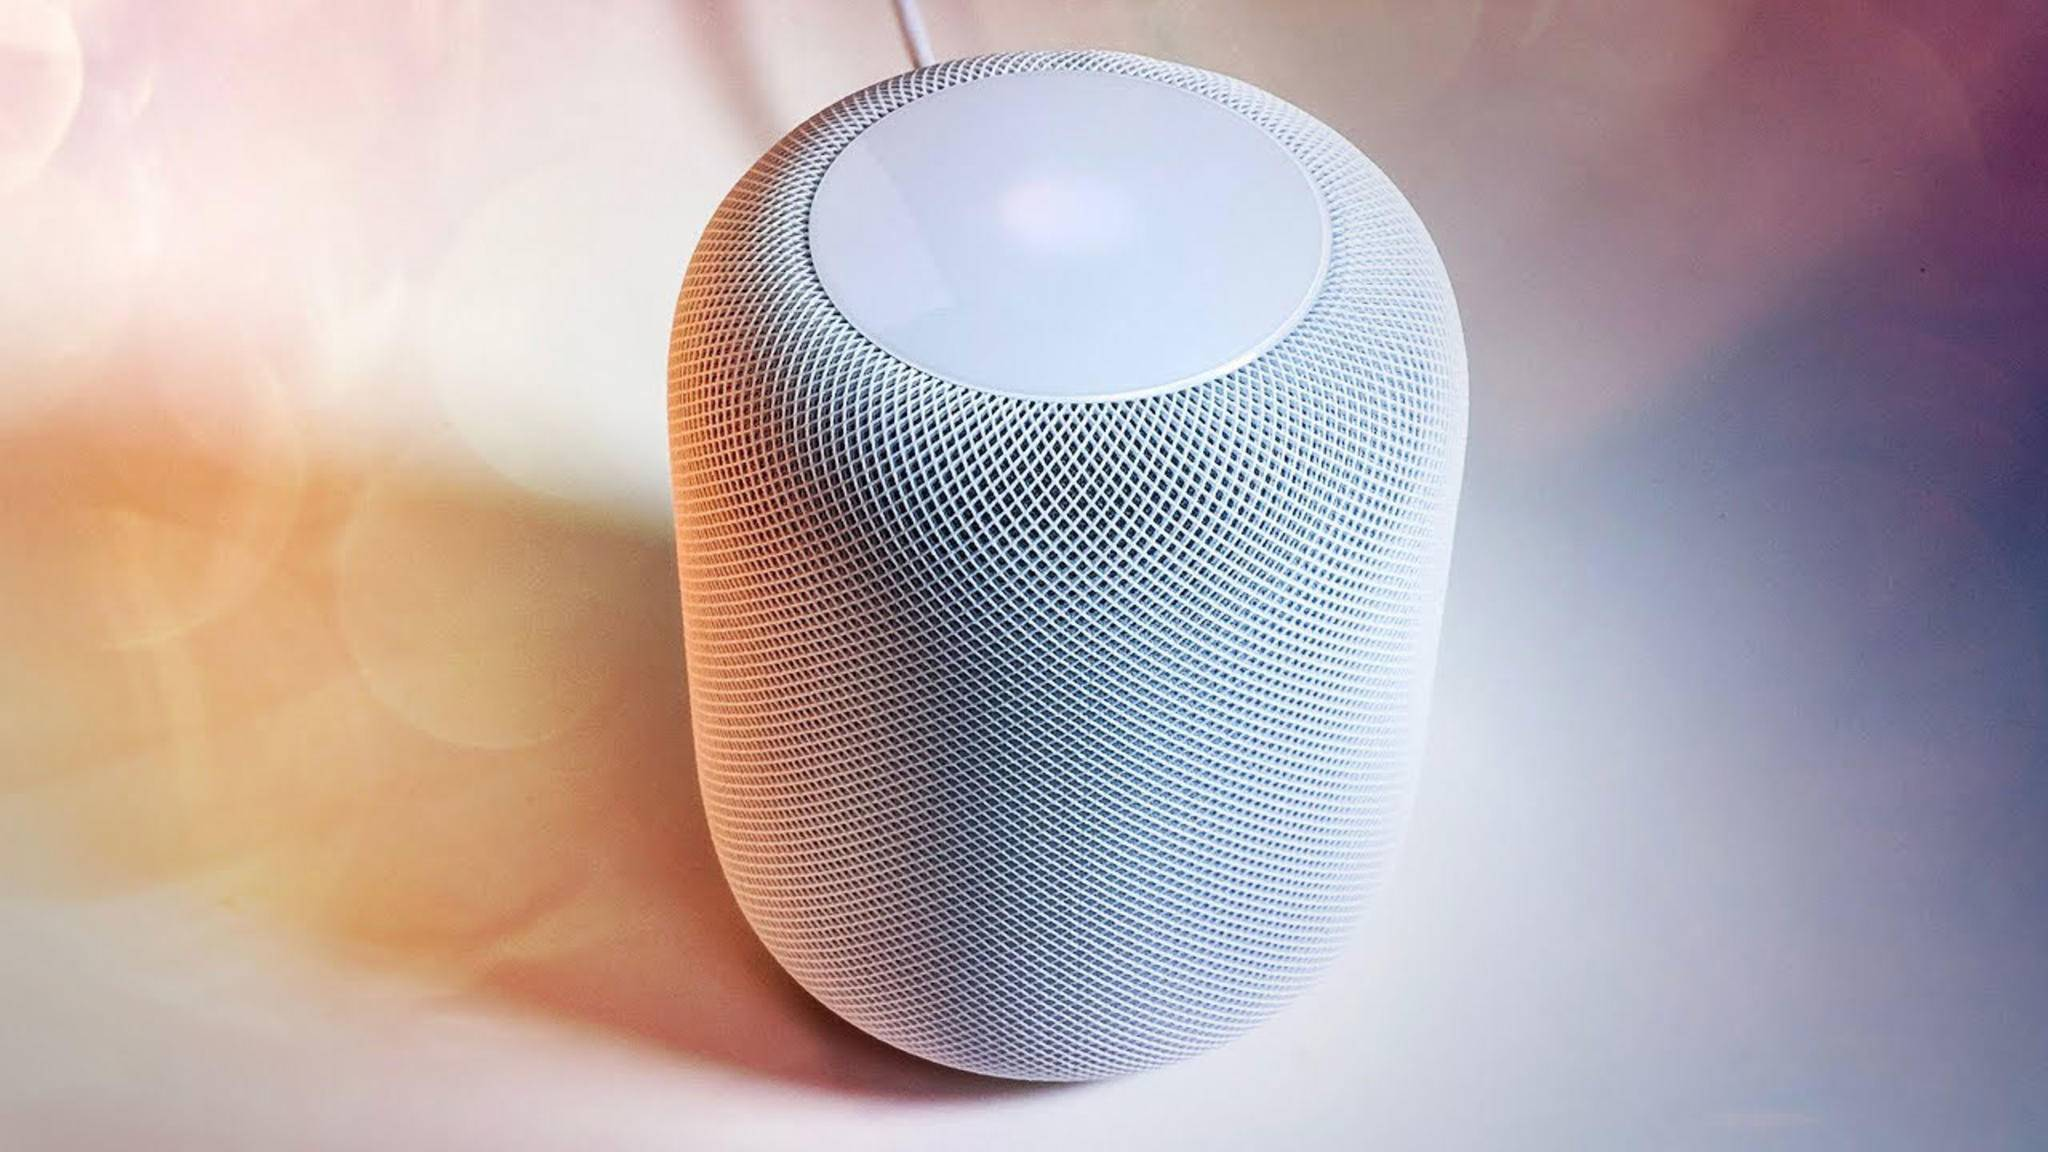 Blindtest mit Spotify-Soundqualität: Sonos One & Google Home Max schlagen Apples HomePod